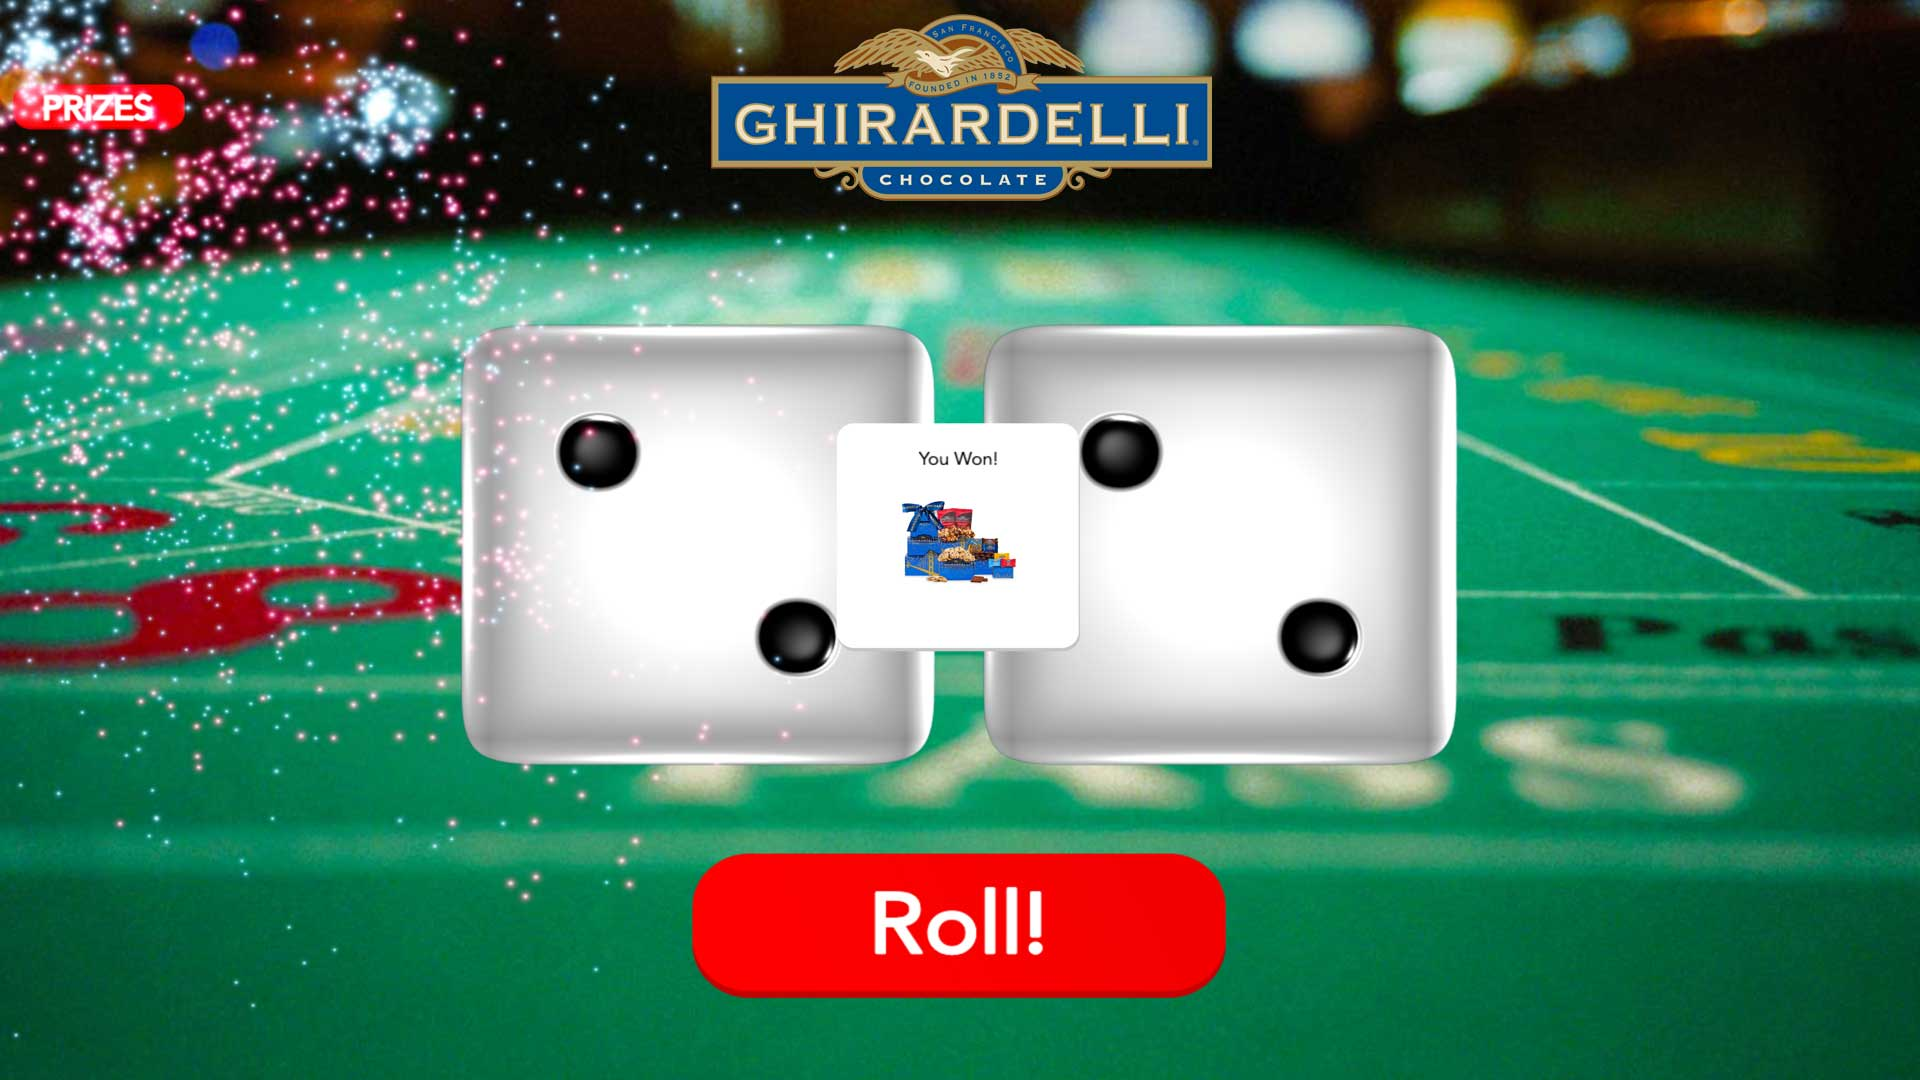 Roll Doubles Game | Ghirardelli